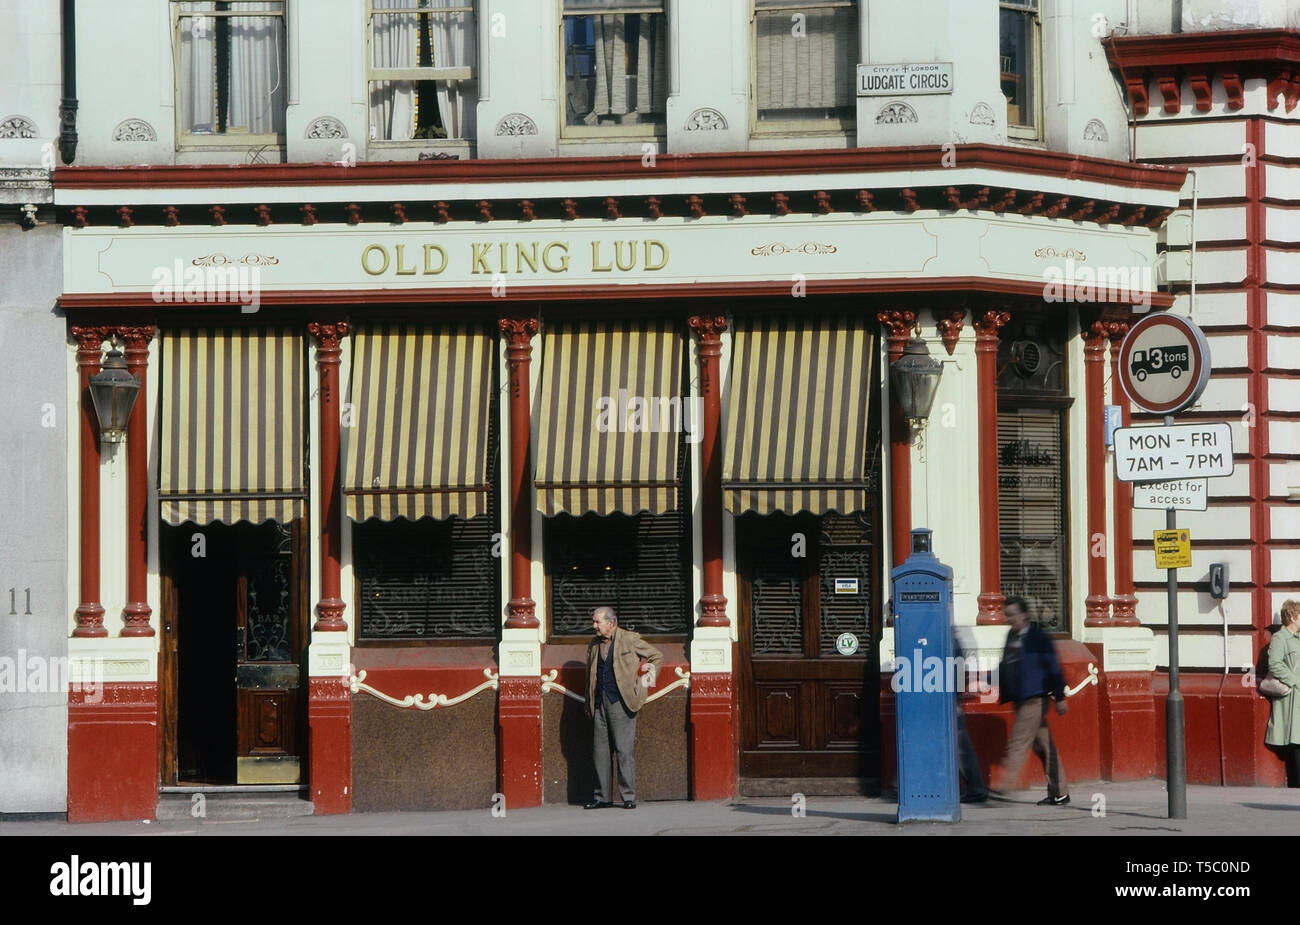 The Old King Lud pub, Ludgate Circus, London, England, UK. Circa 1980's - Stock Image